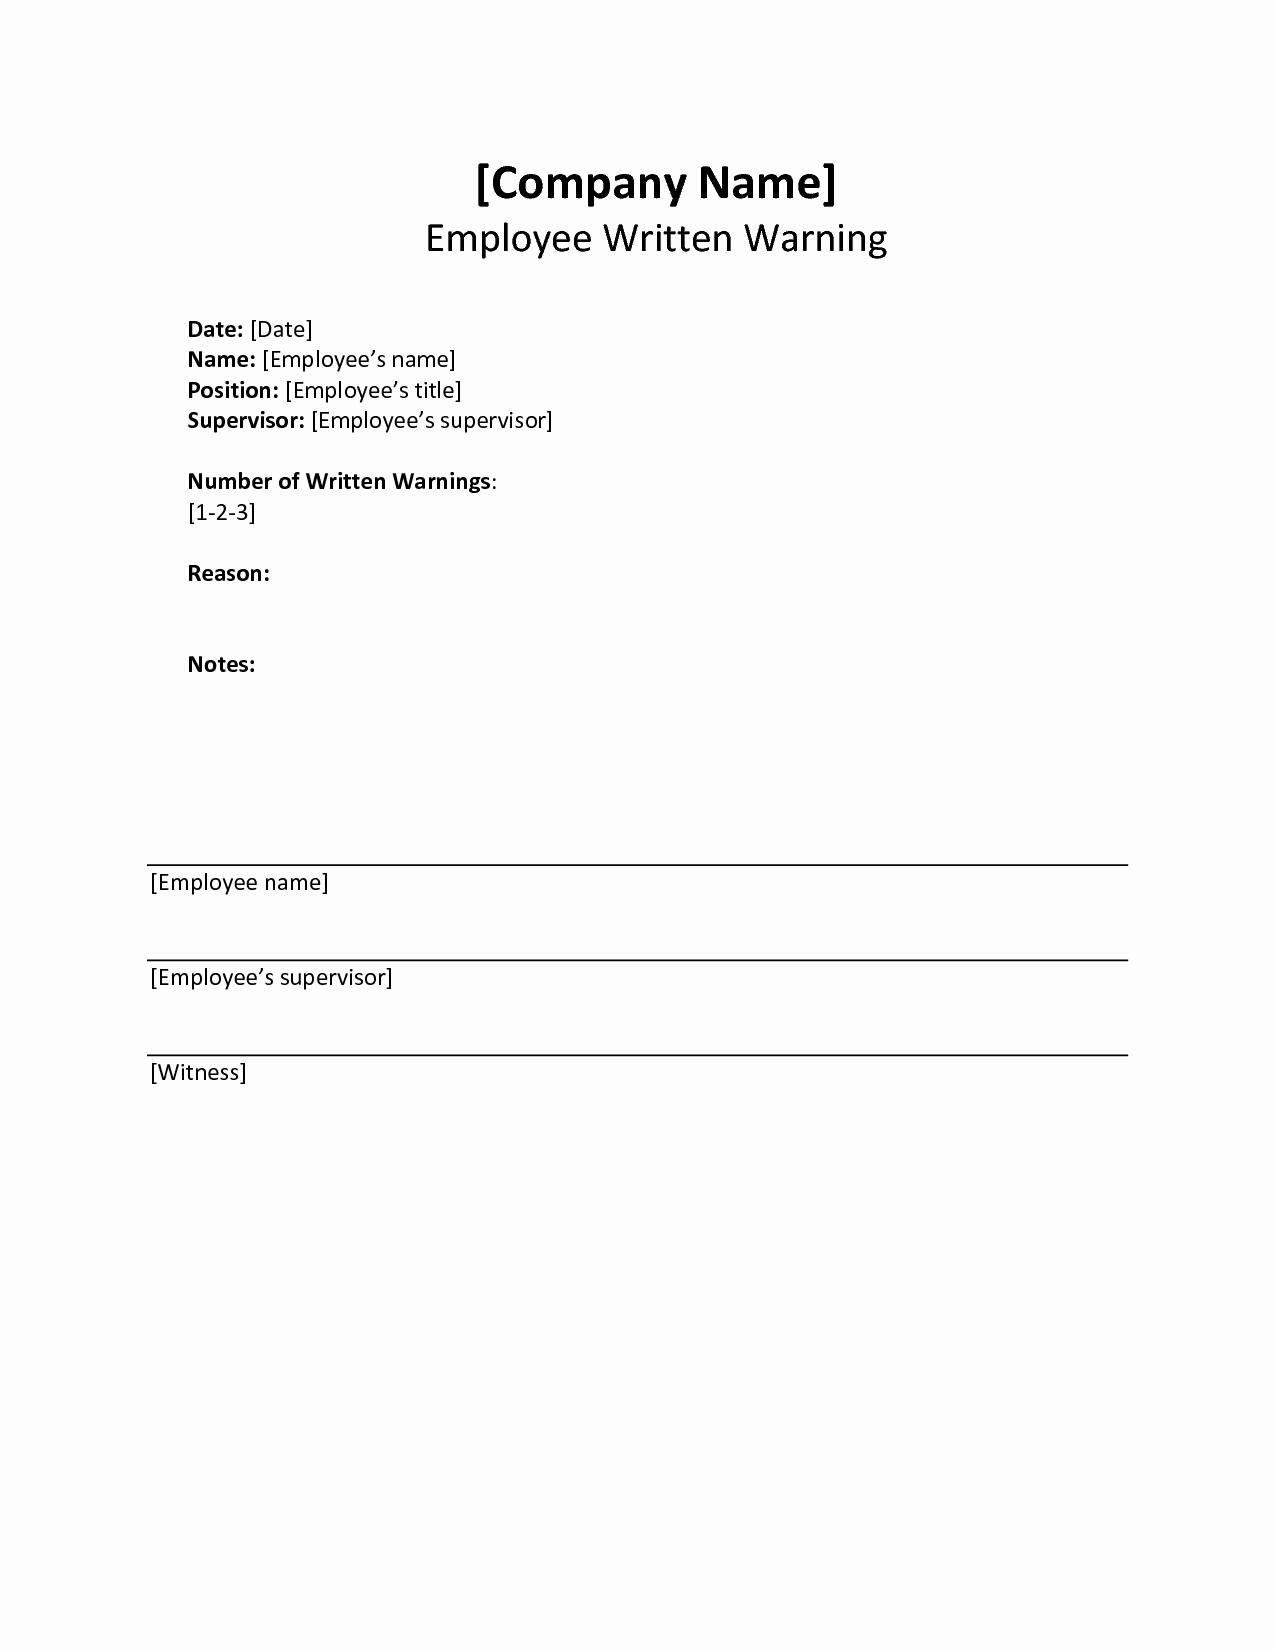 Employee Written Warning Template Luxury Written Warning Template